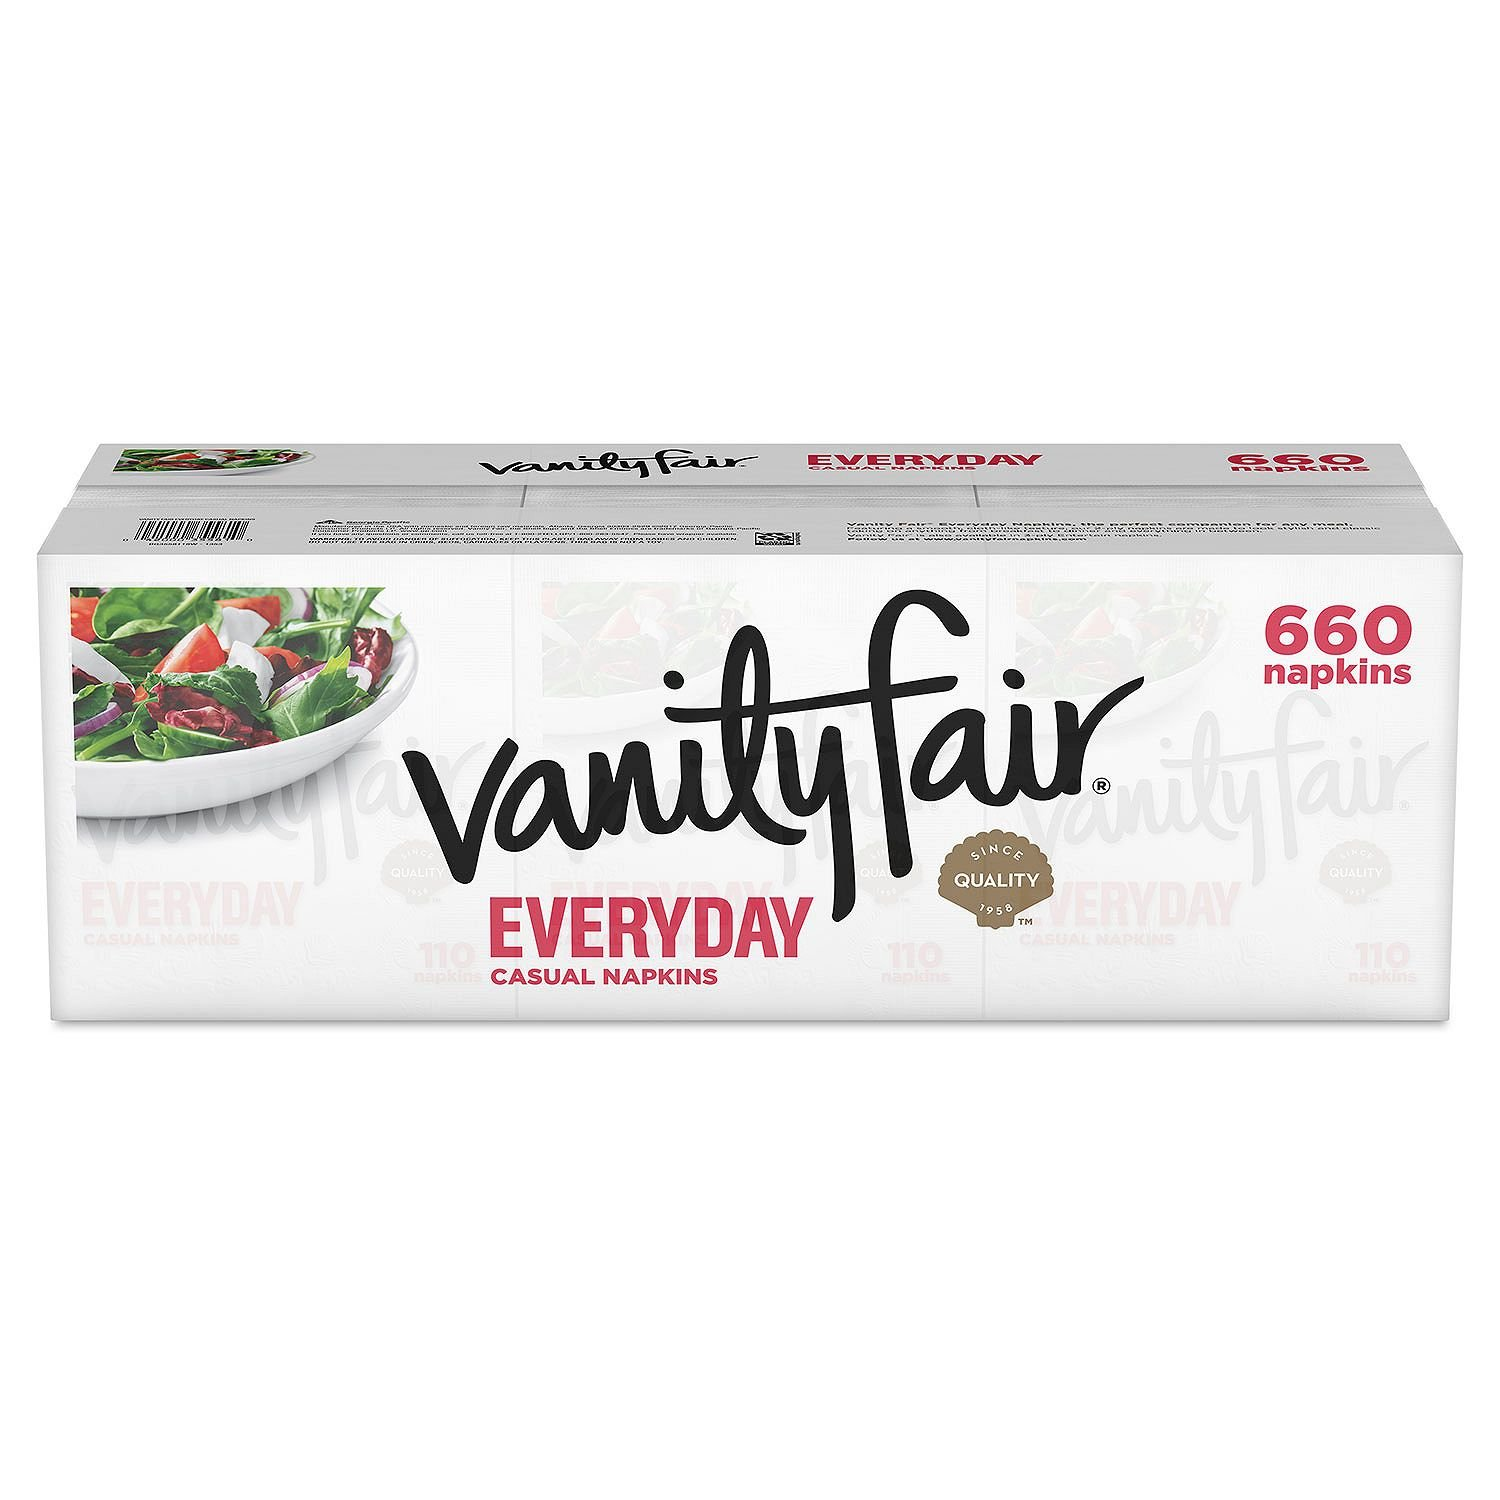 Vanity Fair Everyday Napkins, White Paper Napkins, 660 Count by Vanity Fair (Image #1)